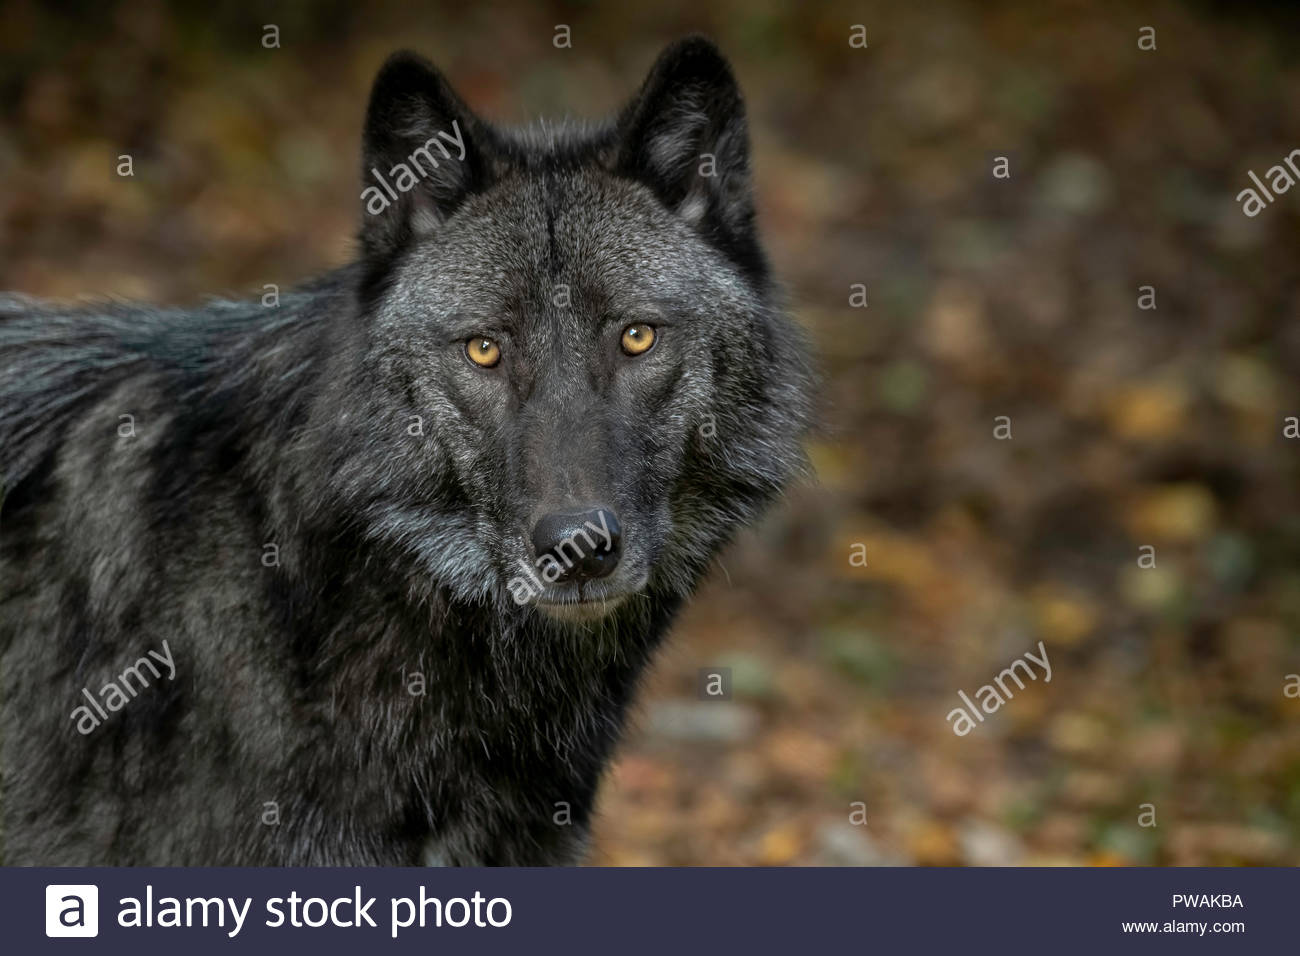 Beautiful Timber Wolf (also known as a Gray Wolf or Grey Wolf) with Black and Silver Markings - Stock Image